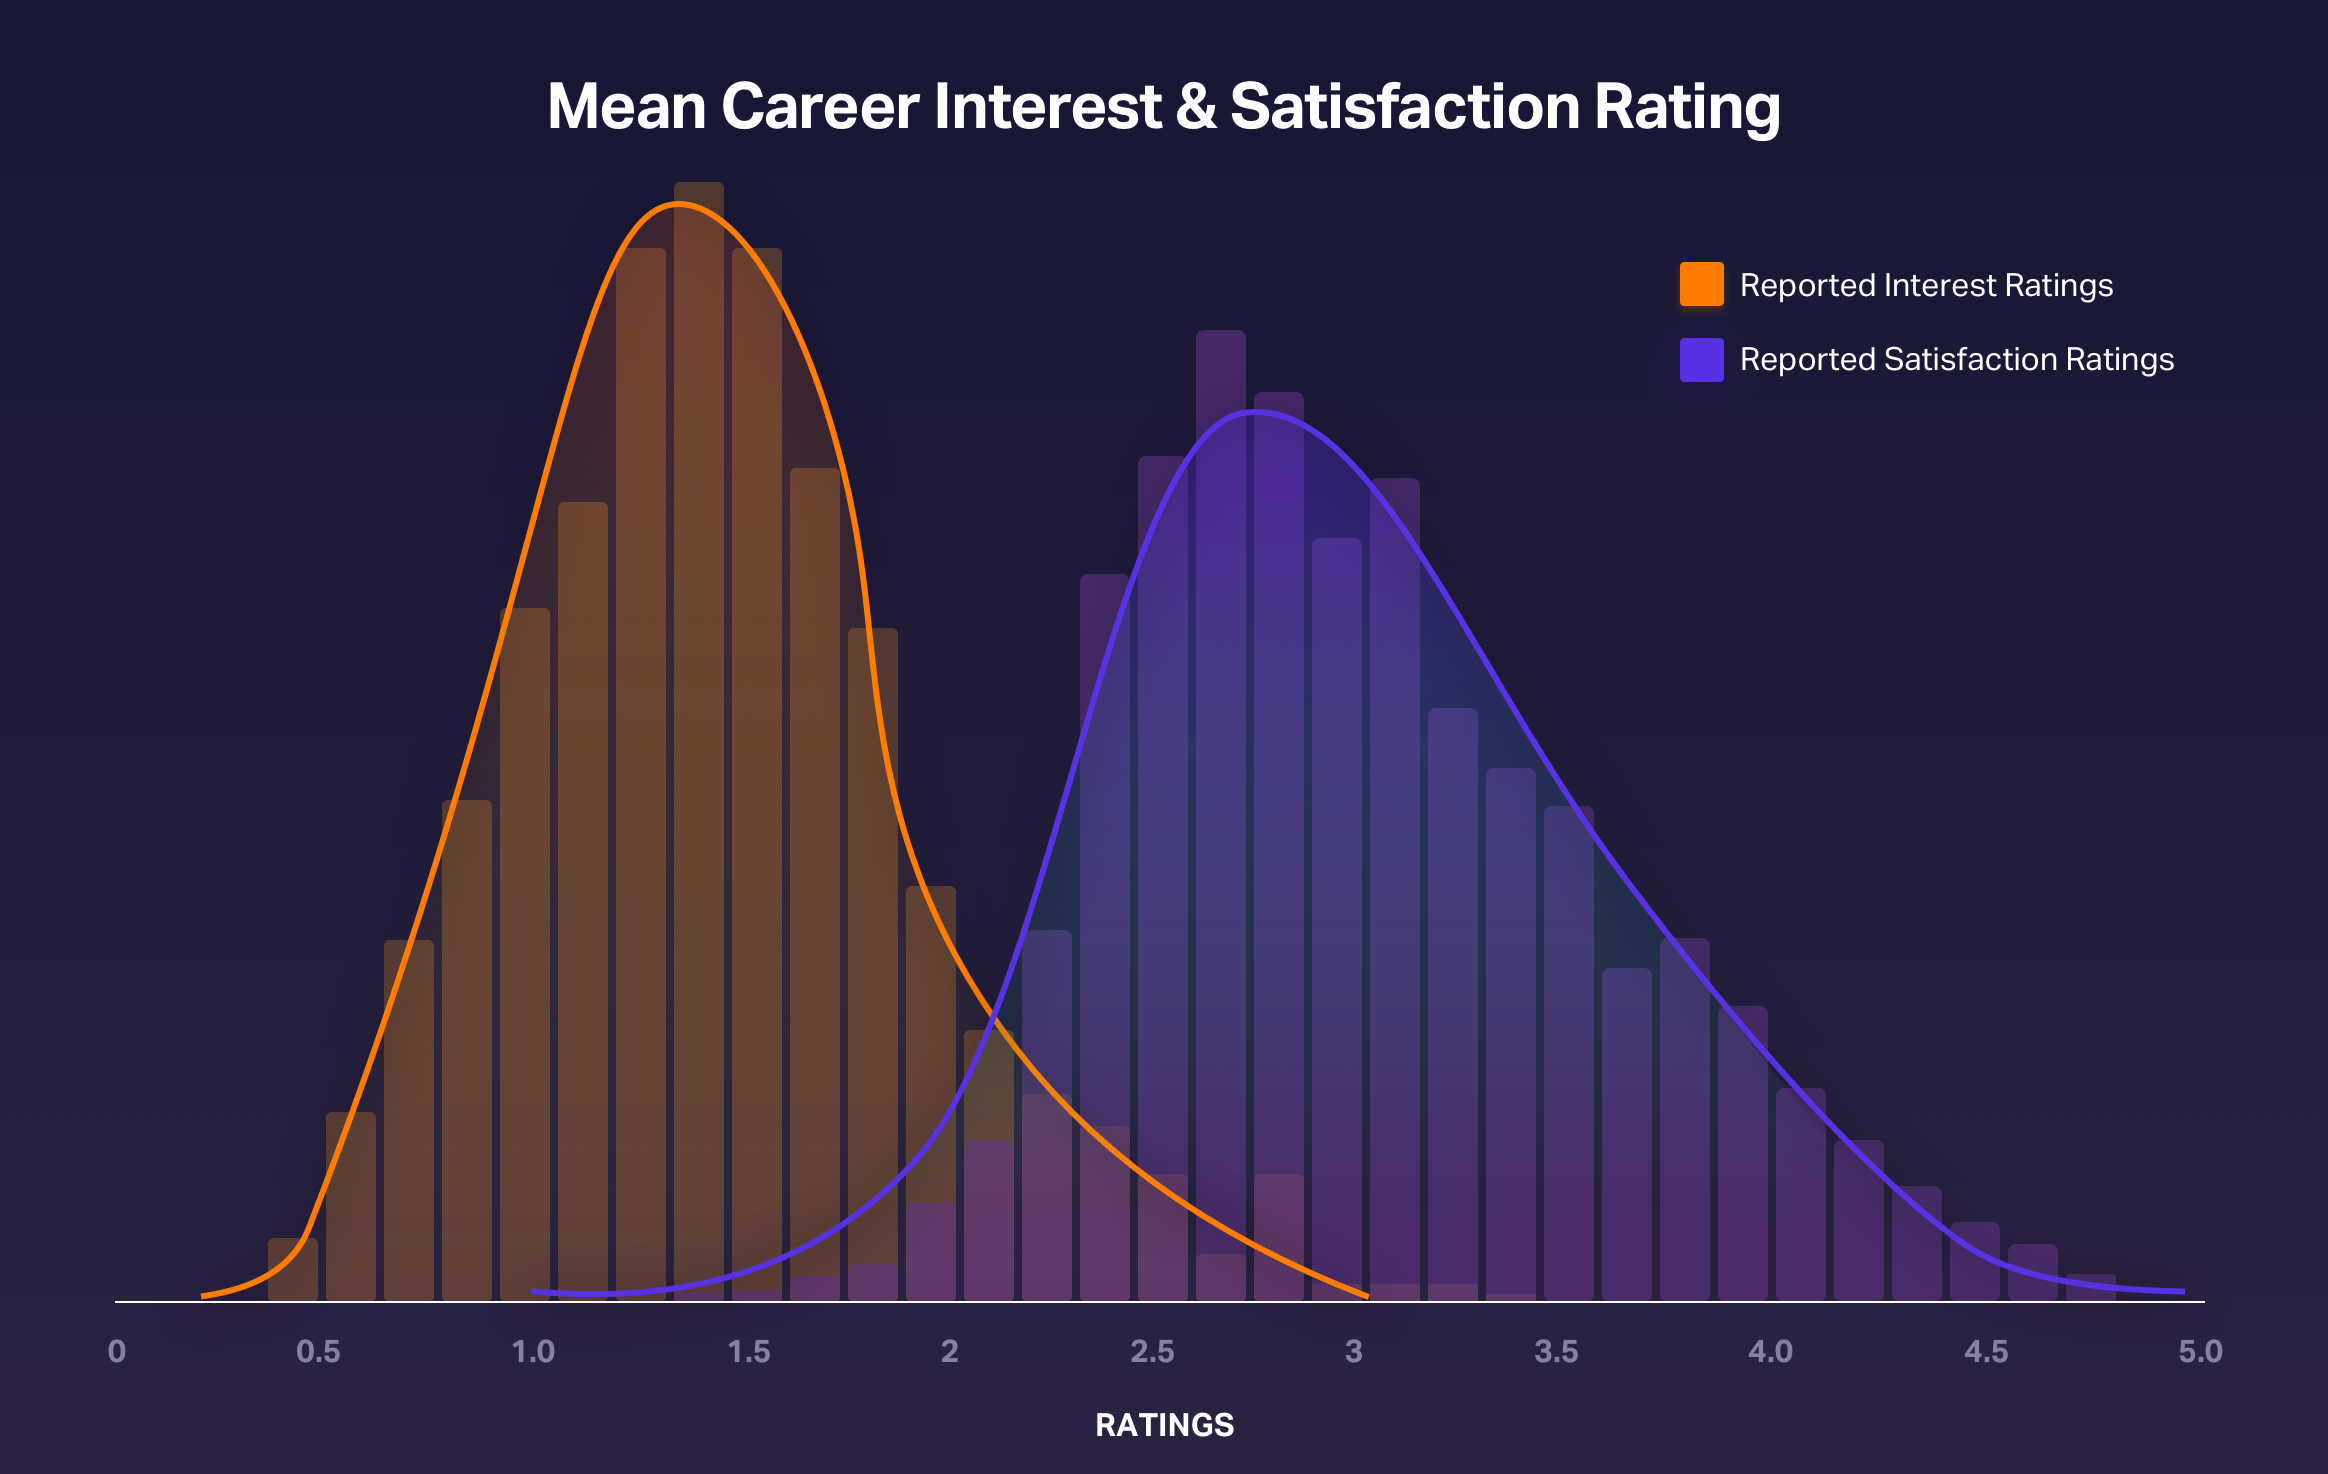 Distribution of interest ratings versus satisfaction ratings